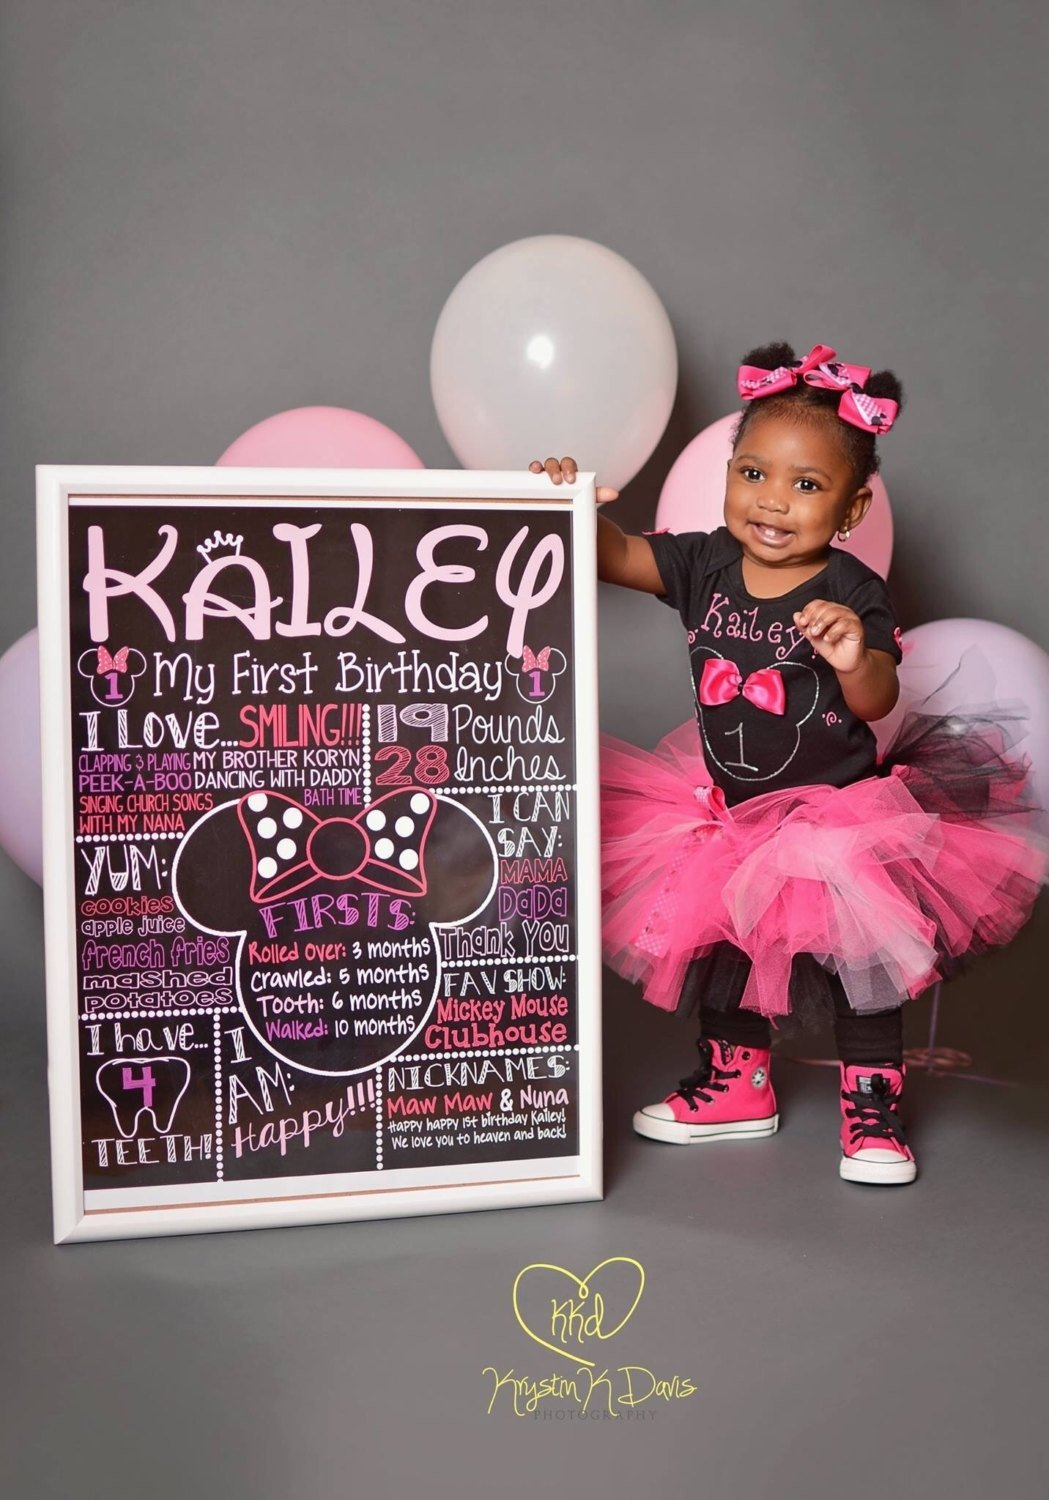 10 Wonderful Minnie Mouse 1St Birthday Ideas minnie mouse first birthday chalkboard 1st birthday chalkboard for 3